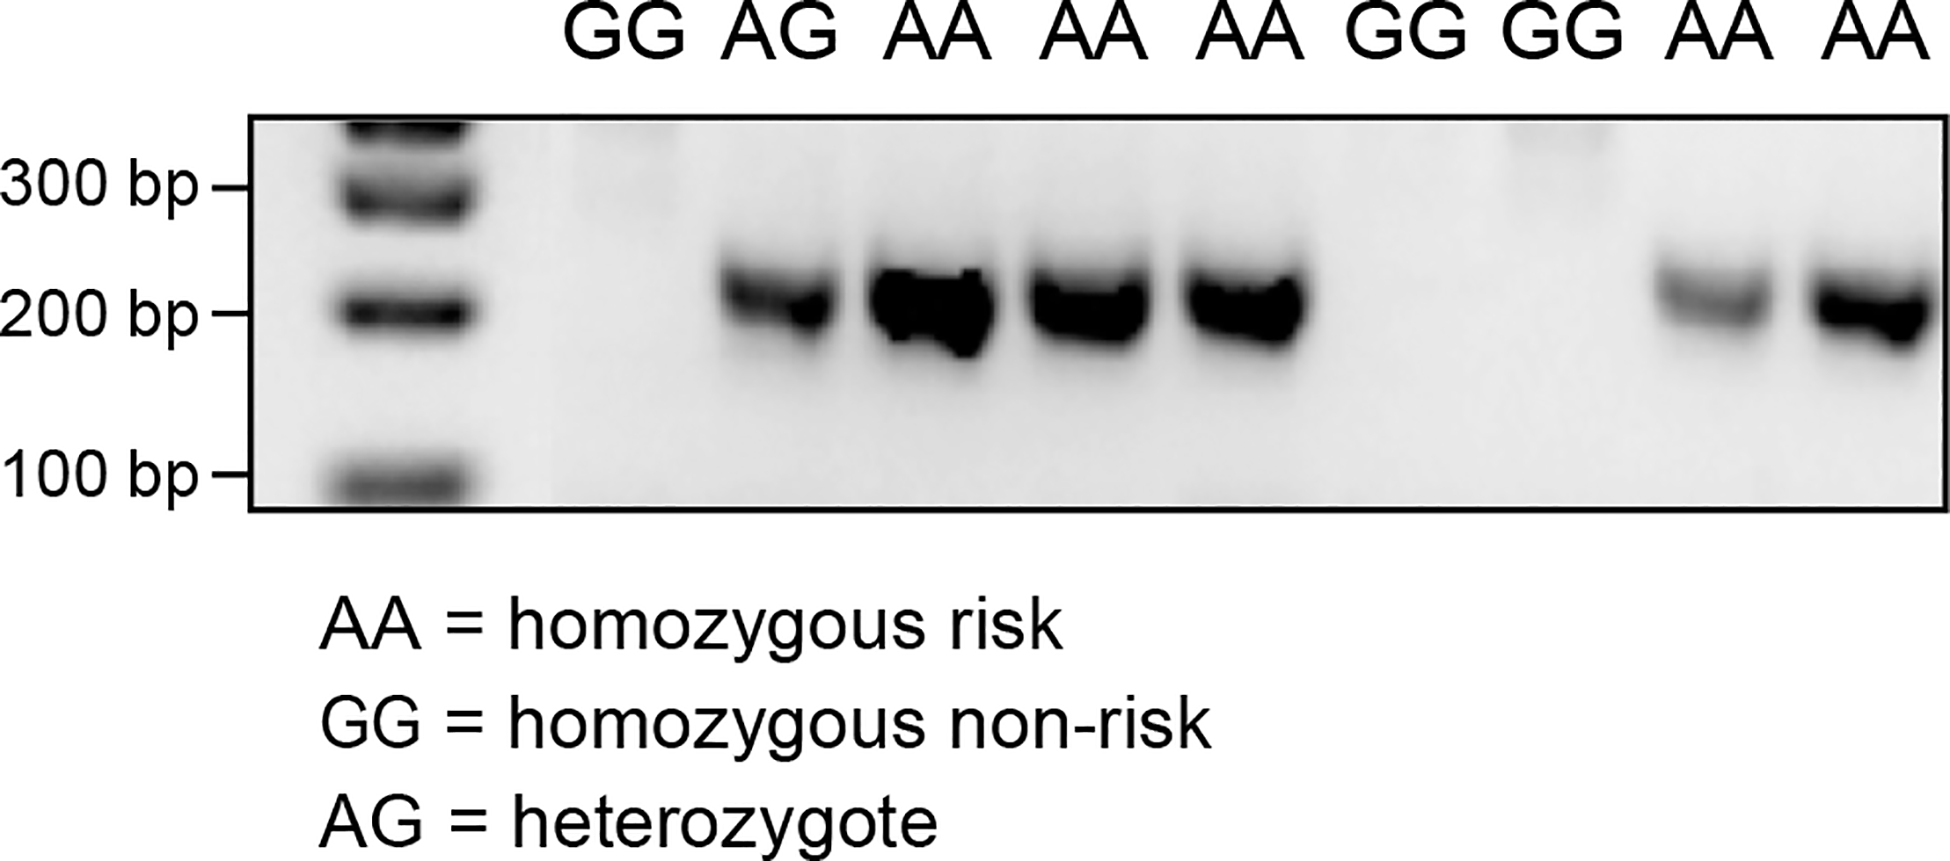 PCR products confirming the alternative splice site in the individuals carrying the A allele on CFA20: 42080147.